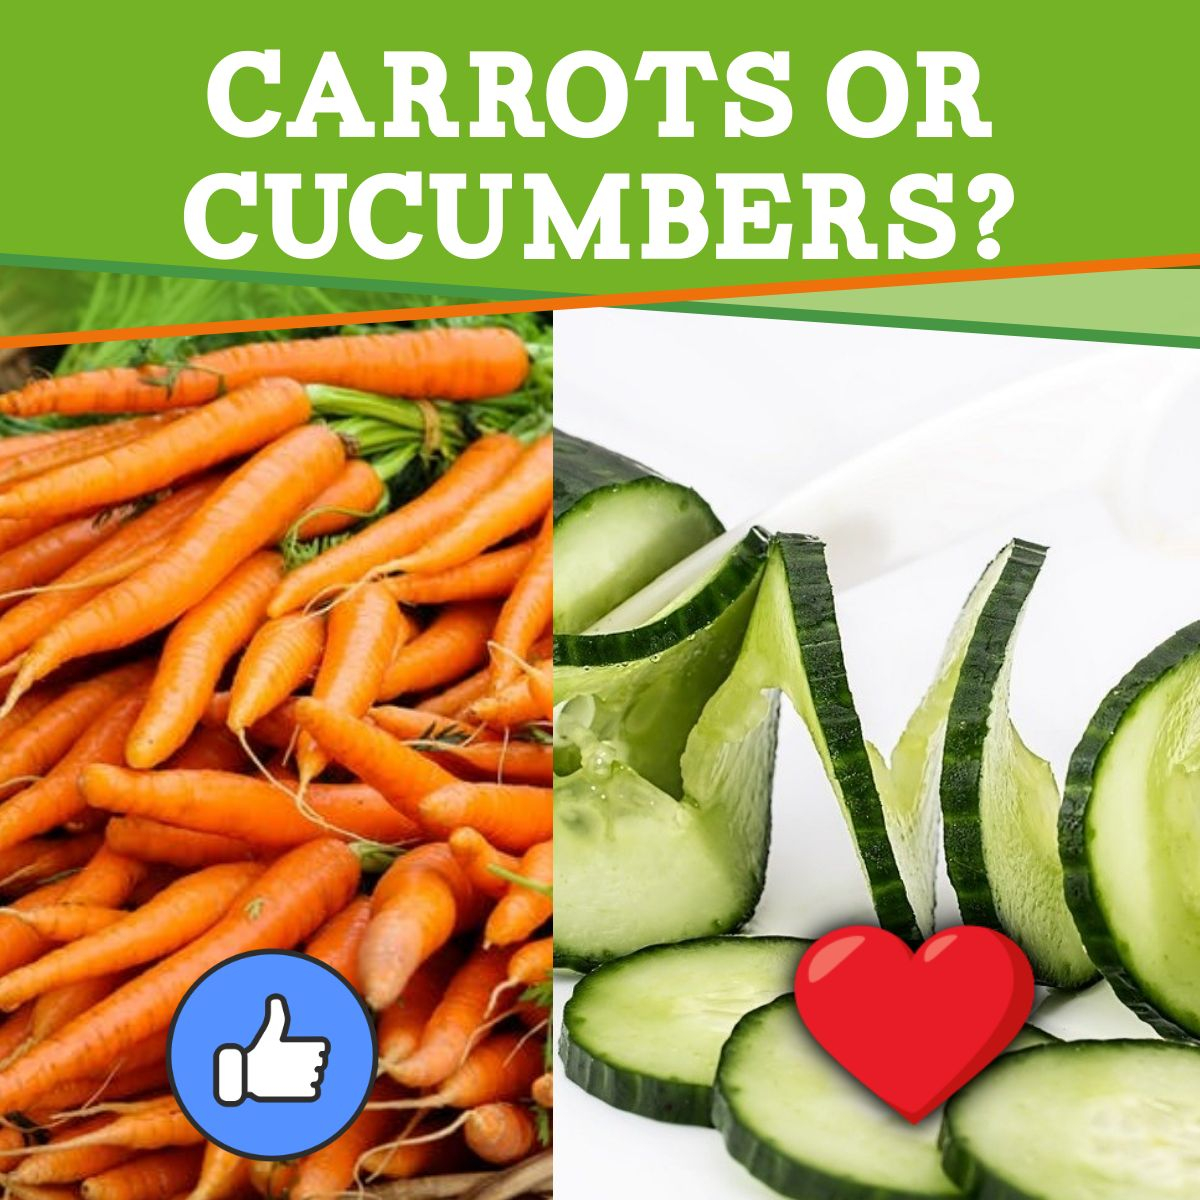 Which do you prefer? Let us know in the comments!  #carrotsorcucumbers #thisorthat #veggies #vegetables #carrots #cucumbers #like #heart #grocery #groceries #directtoconsumer #d2c https://t.co/WantVBOMrc